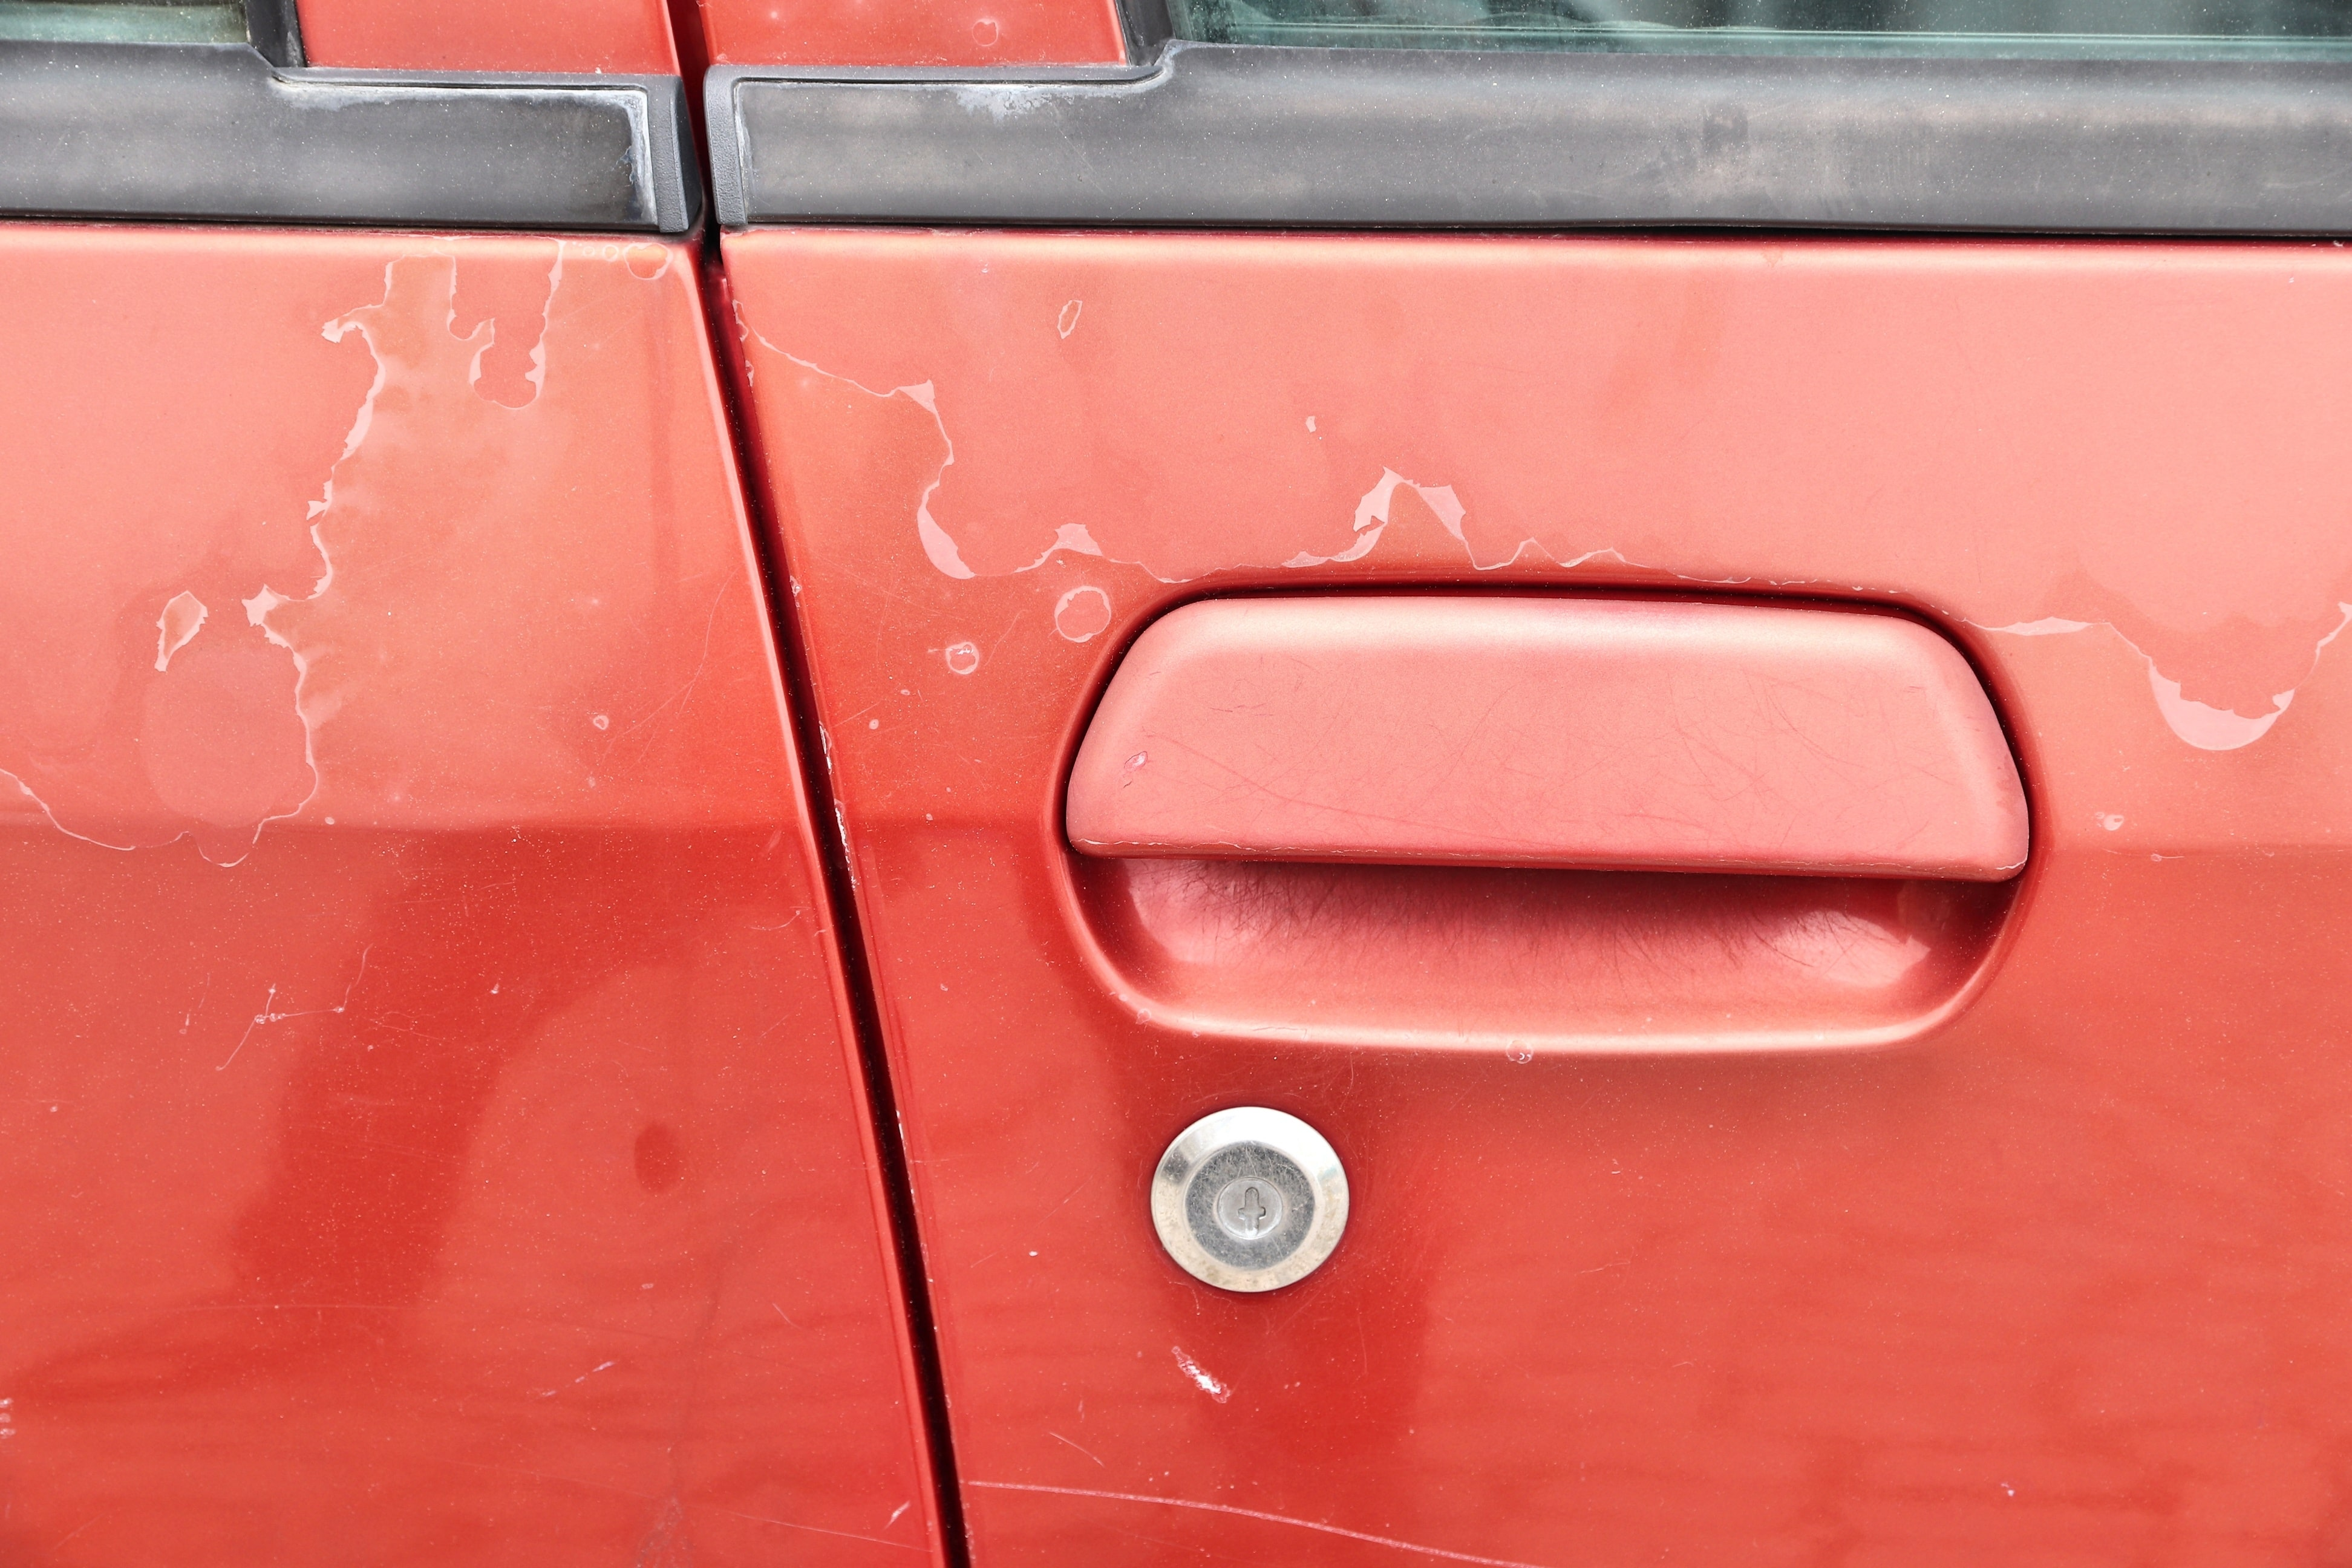 Peeling Car, Chipped Paint, Red, Sun Damage